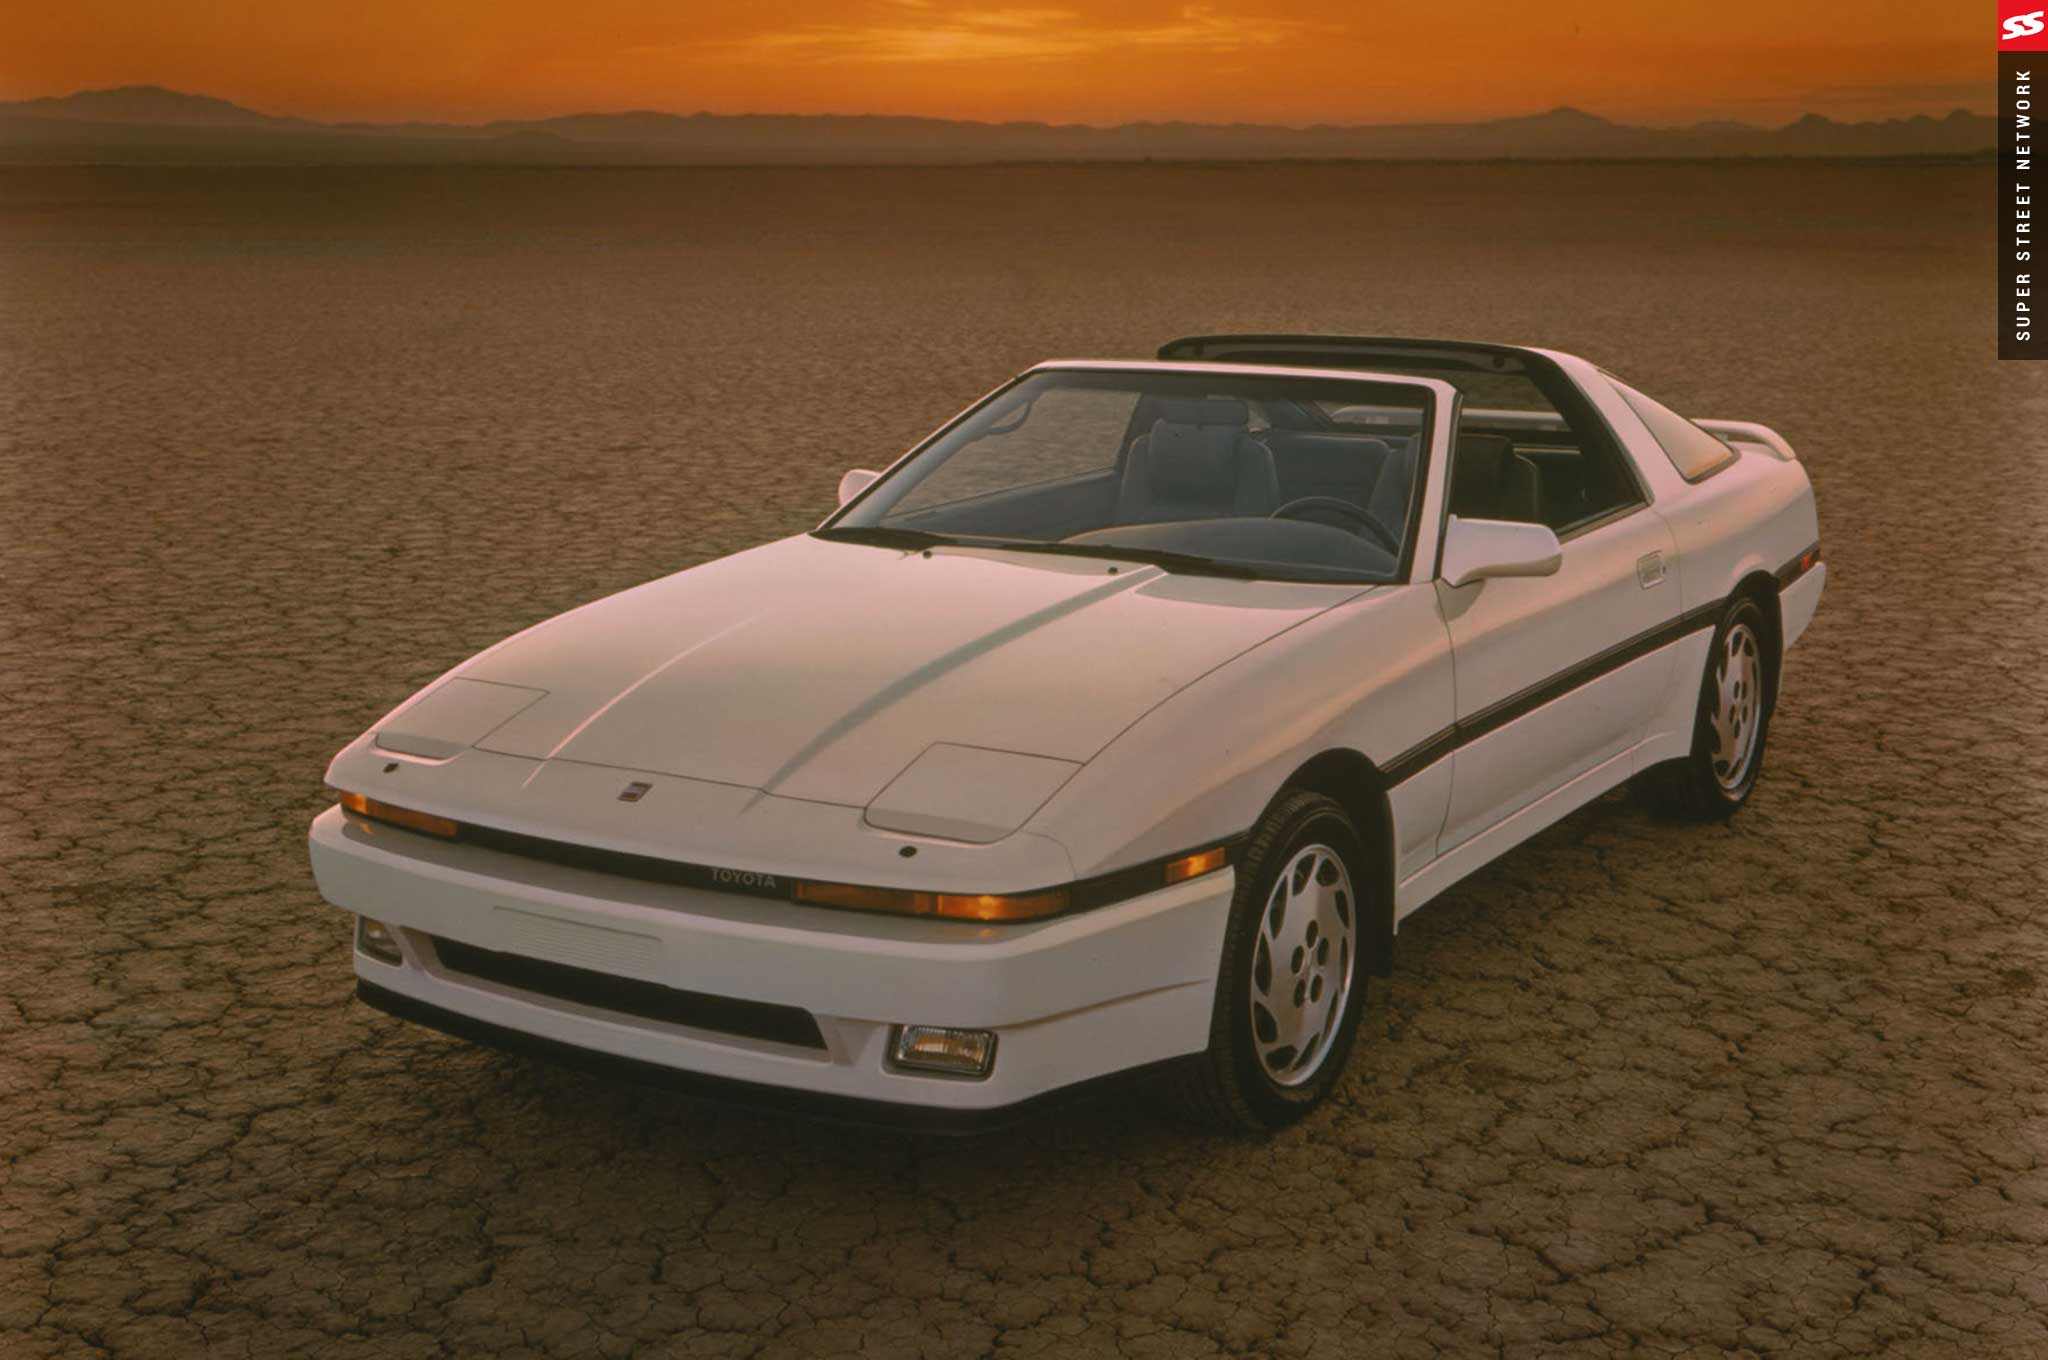 Toyota Ft 1 Specs >> Throwback Thursday: The 1993-1998 Toyota Supra